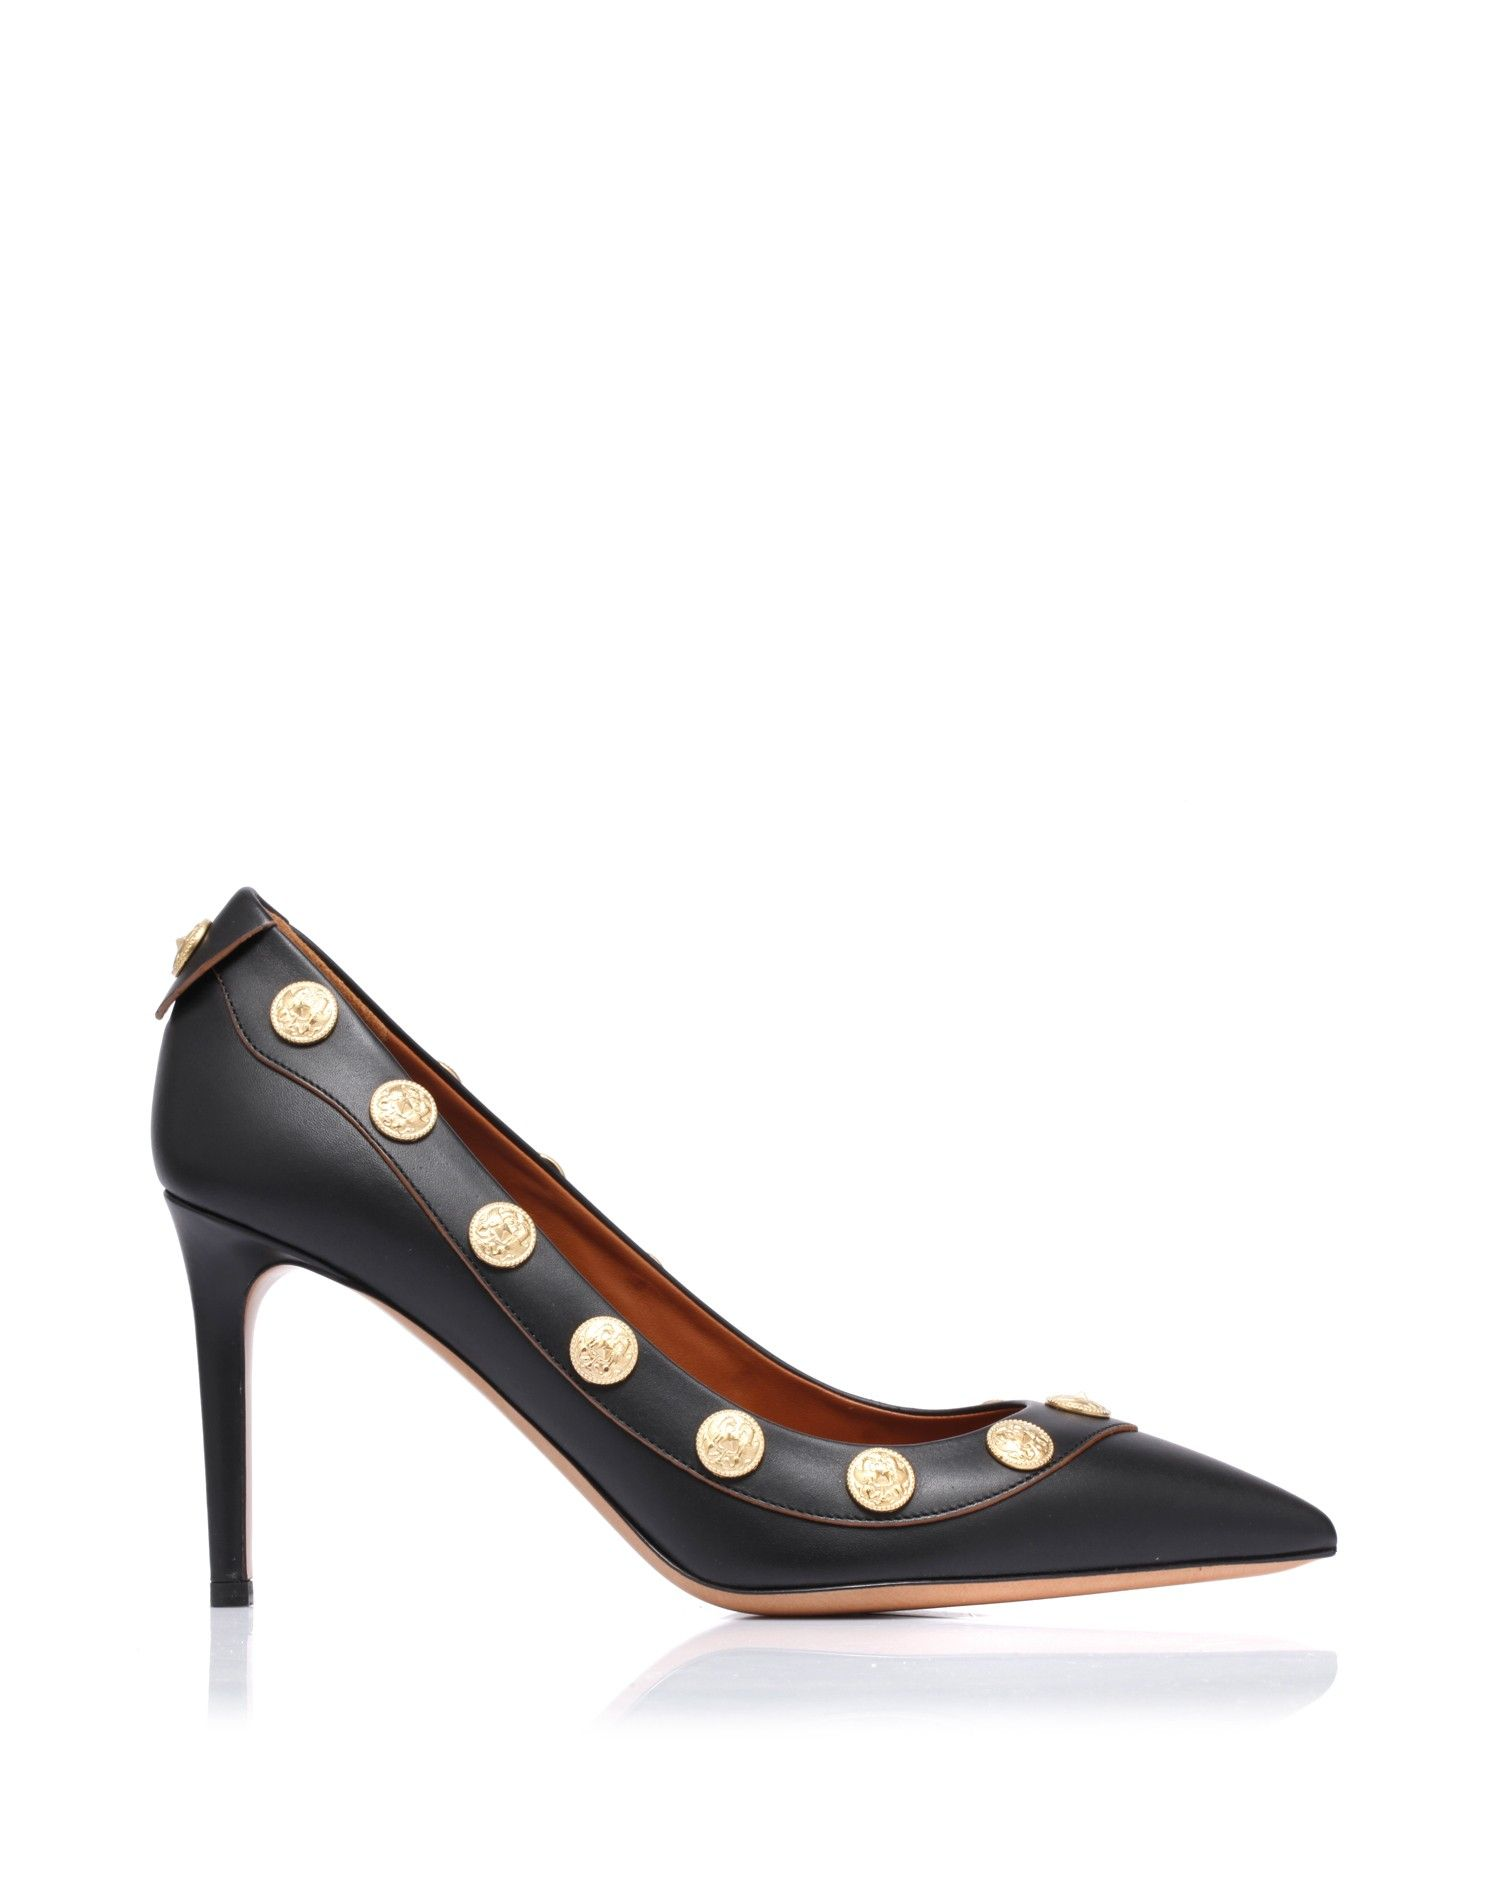 Leather pump with squared tip, leather sole and heel. The pefection of the shape is decorated by some round goldtone coins, put on a tone on tone leather along the border stripe. @valentino